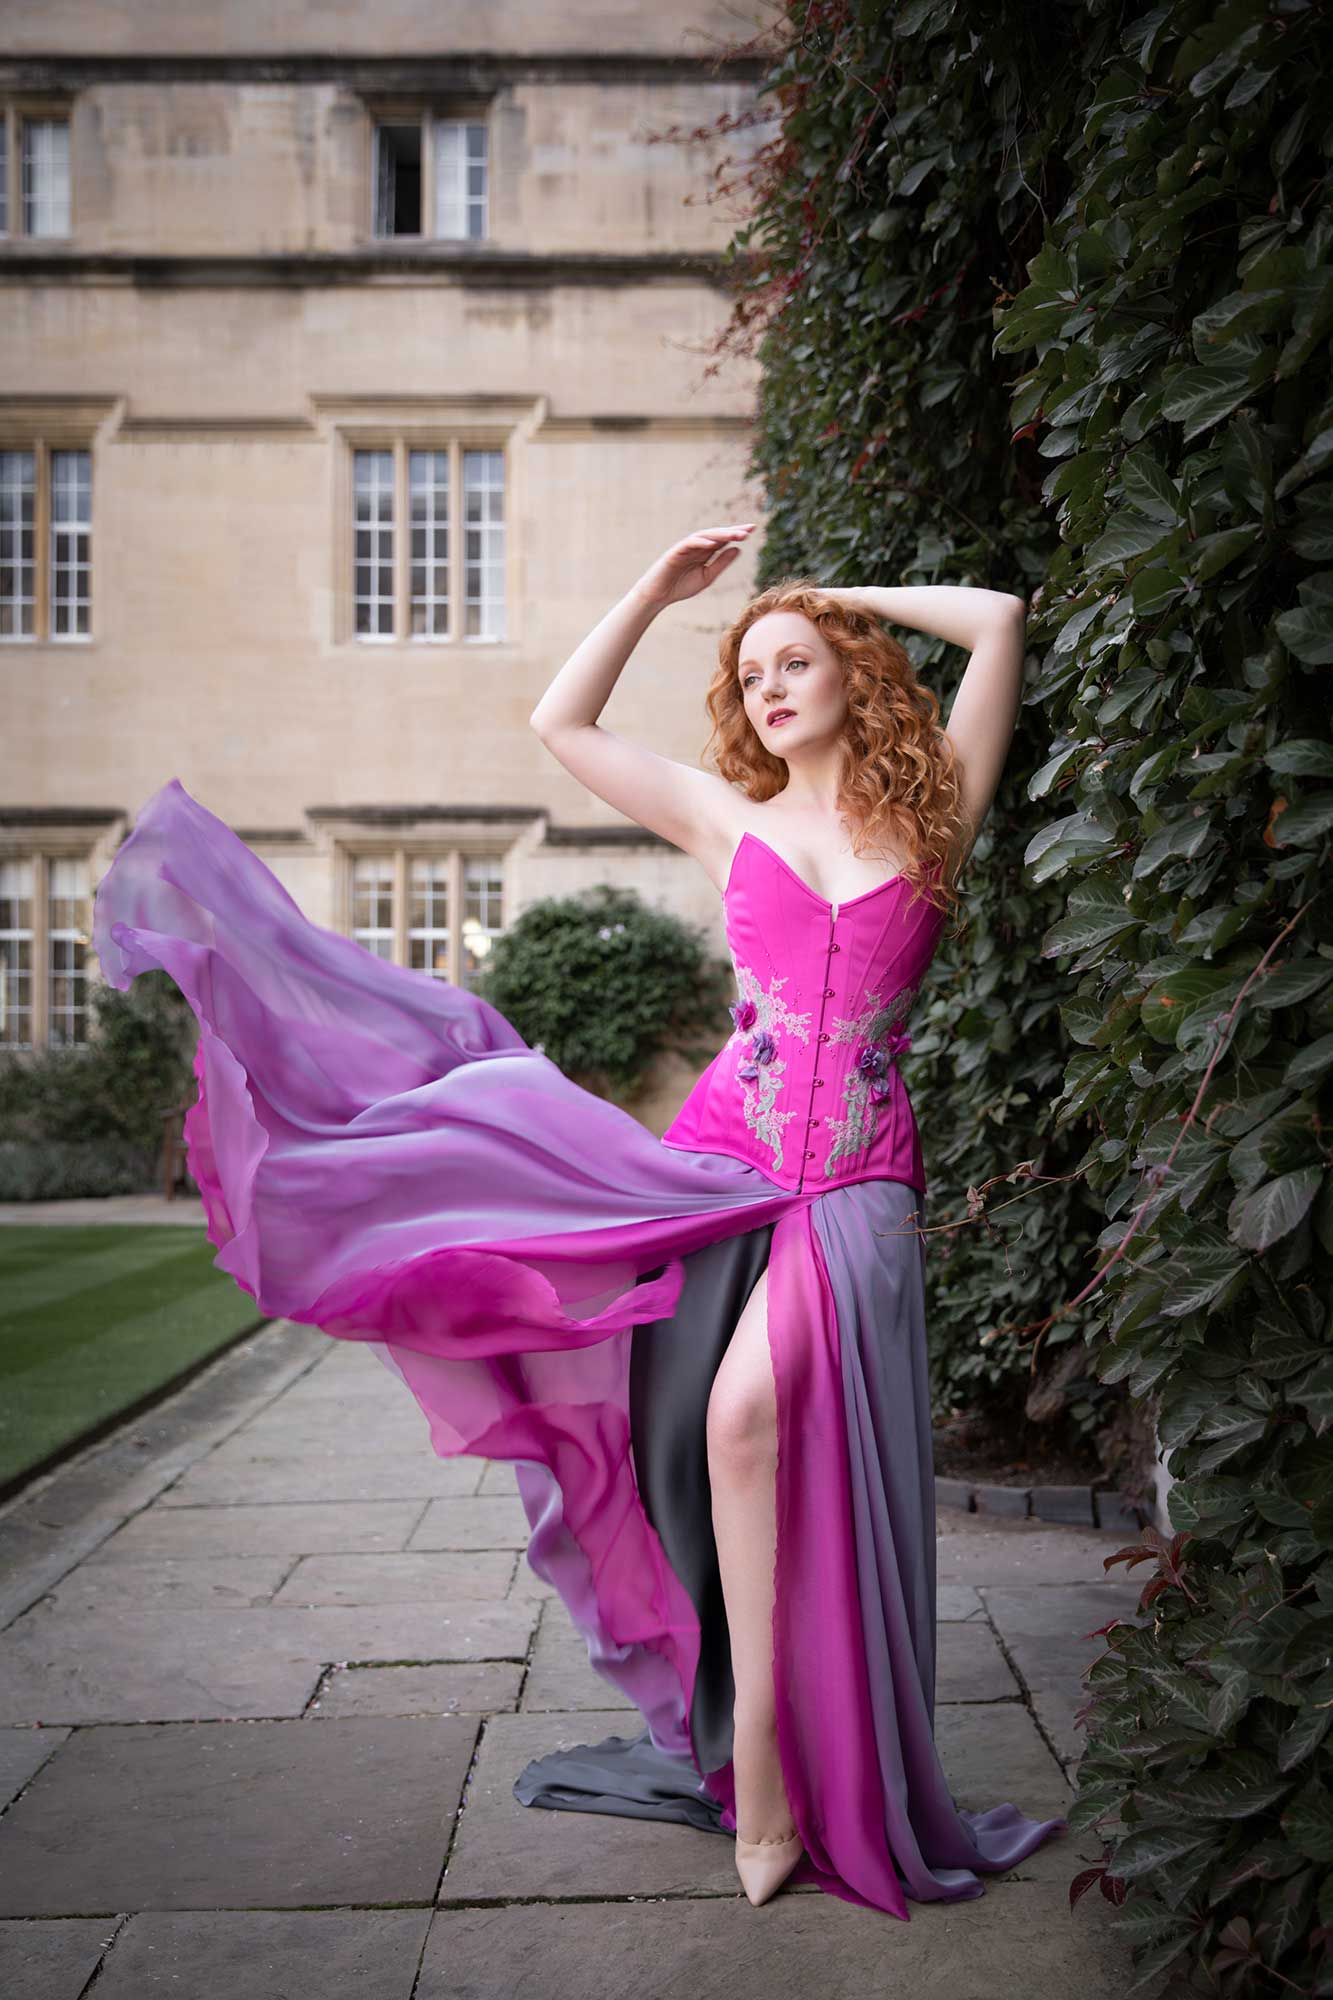 Outdoor Lingerie Shoot at Oxford Conference of Corsetry